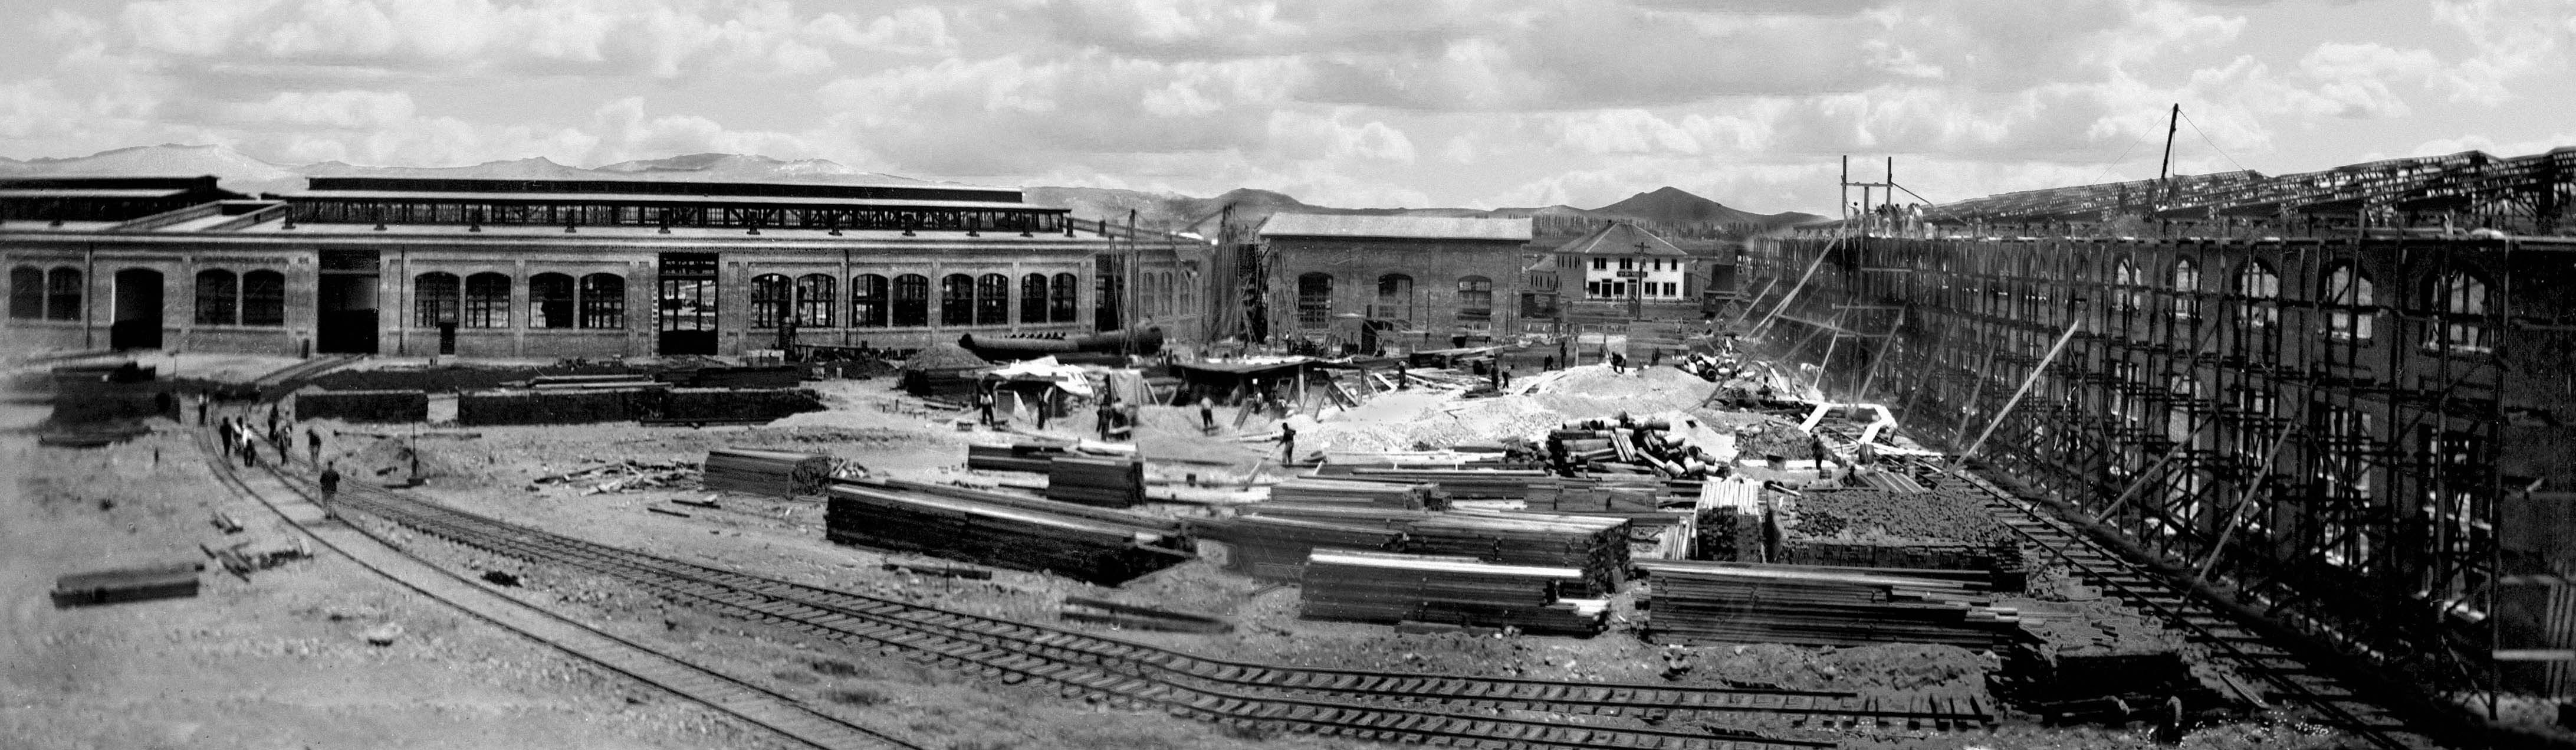 The Central Pacific Railroad wanted to move its operations at Wadsworth, NV closer to Reno. The Central Pacific 21-stall Roundhouse was moved to Sparks, NV and expanded to 40 stalls in 1904 to 1905. It was promoted as the largest railroad roundhouse in the world.